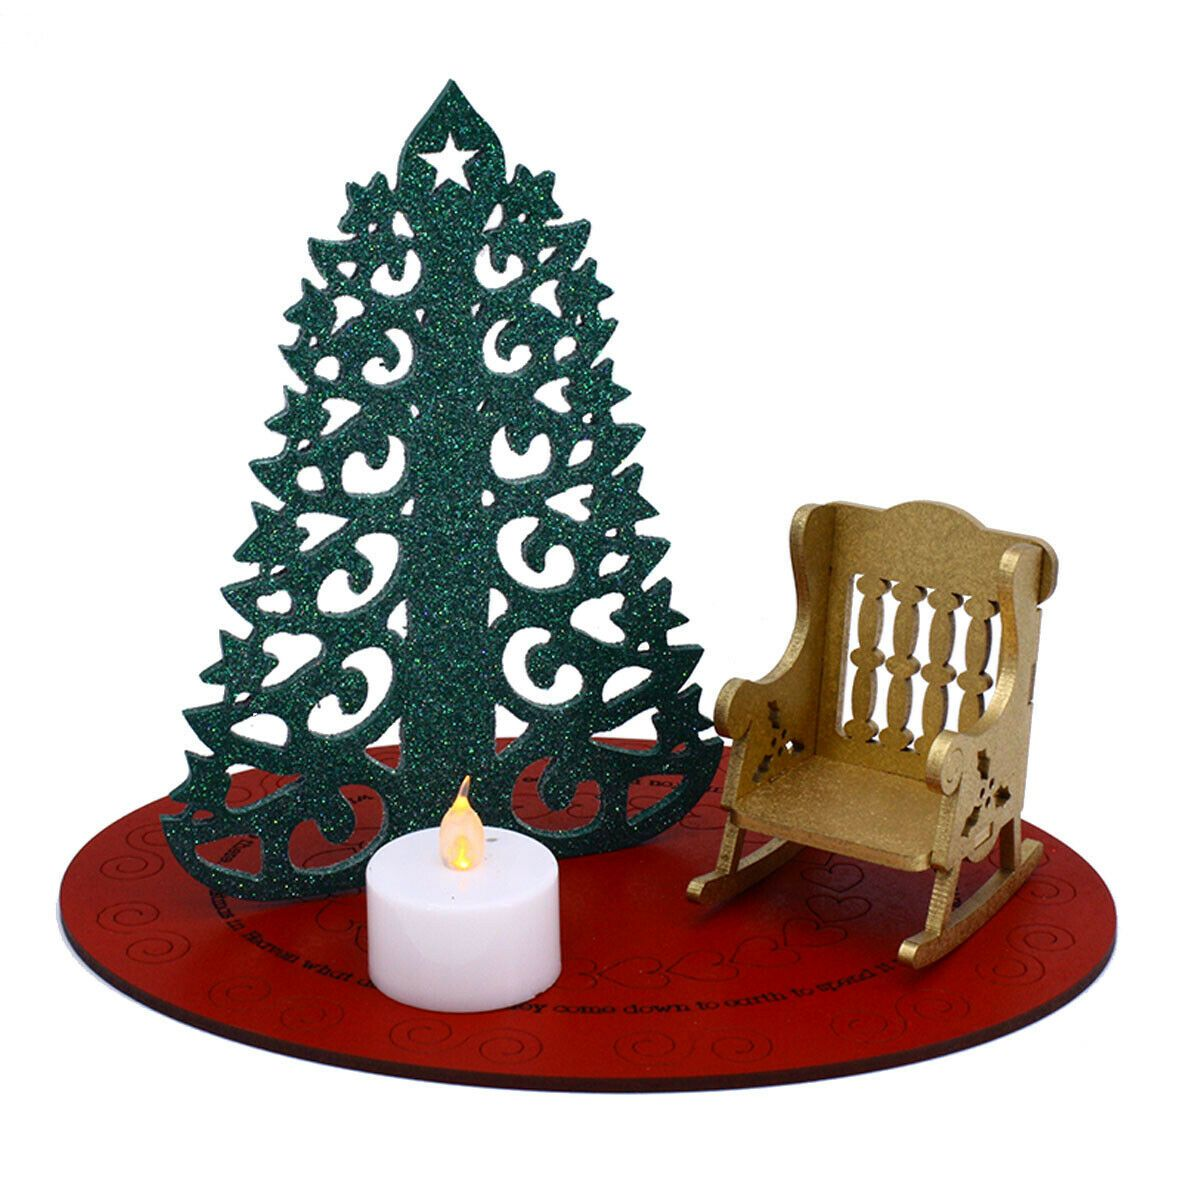 Remarkable Christmas In Heaven Memorial Rocking Chair With Led Tea Light Candle Machost Co Dining Chair Design Ideas Machostcouk